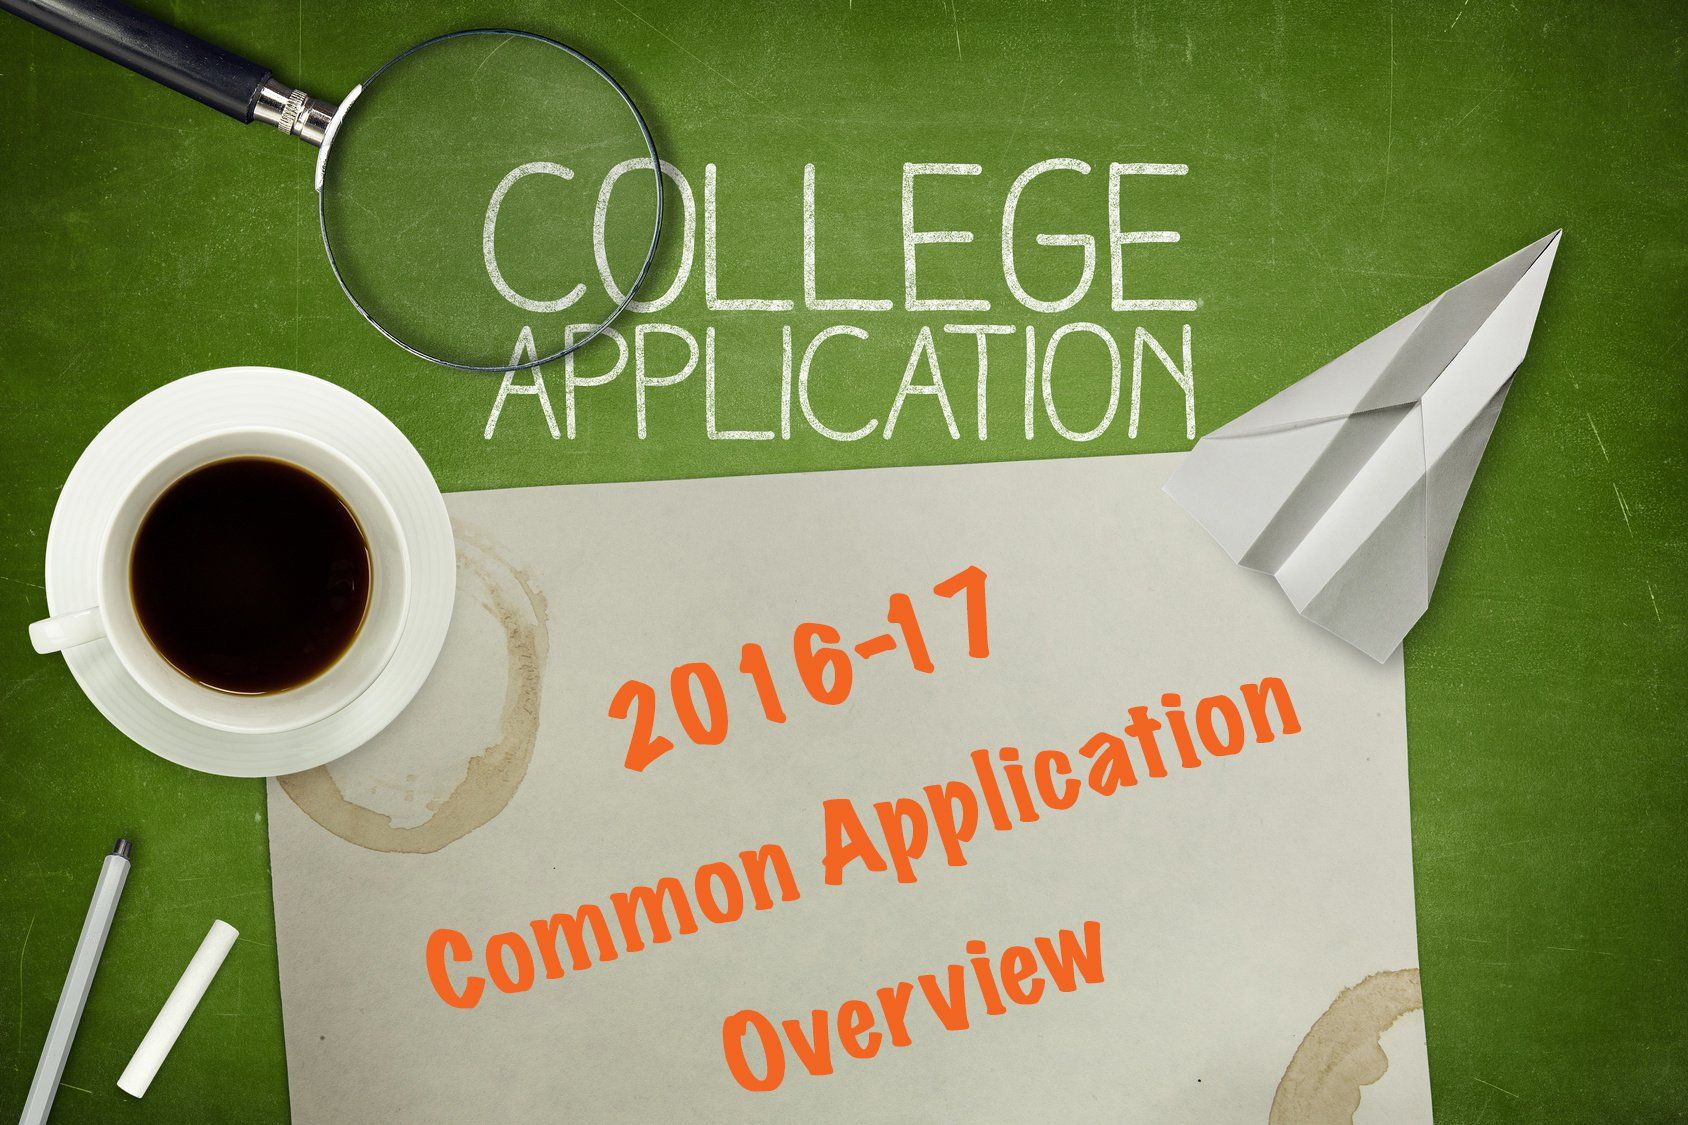 201617 common application overview essay prompts